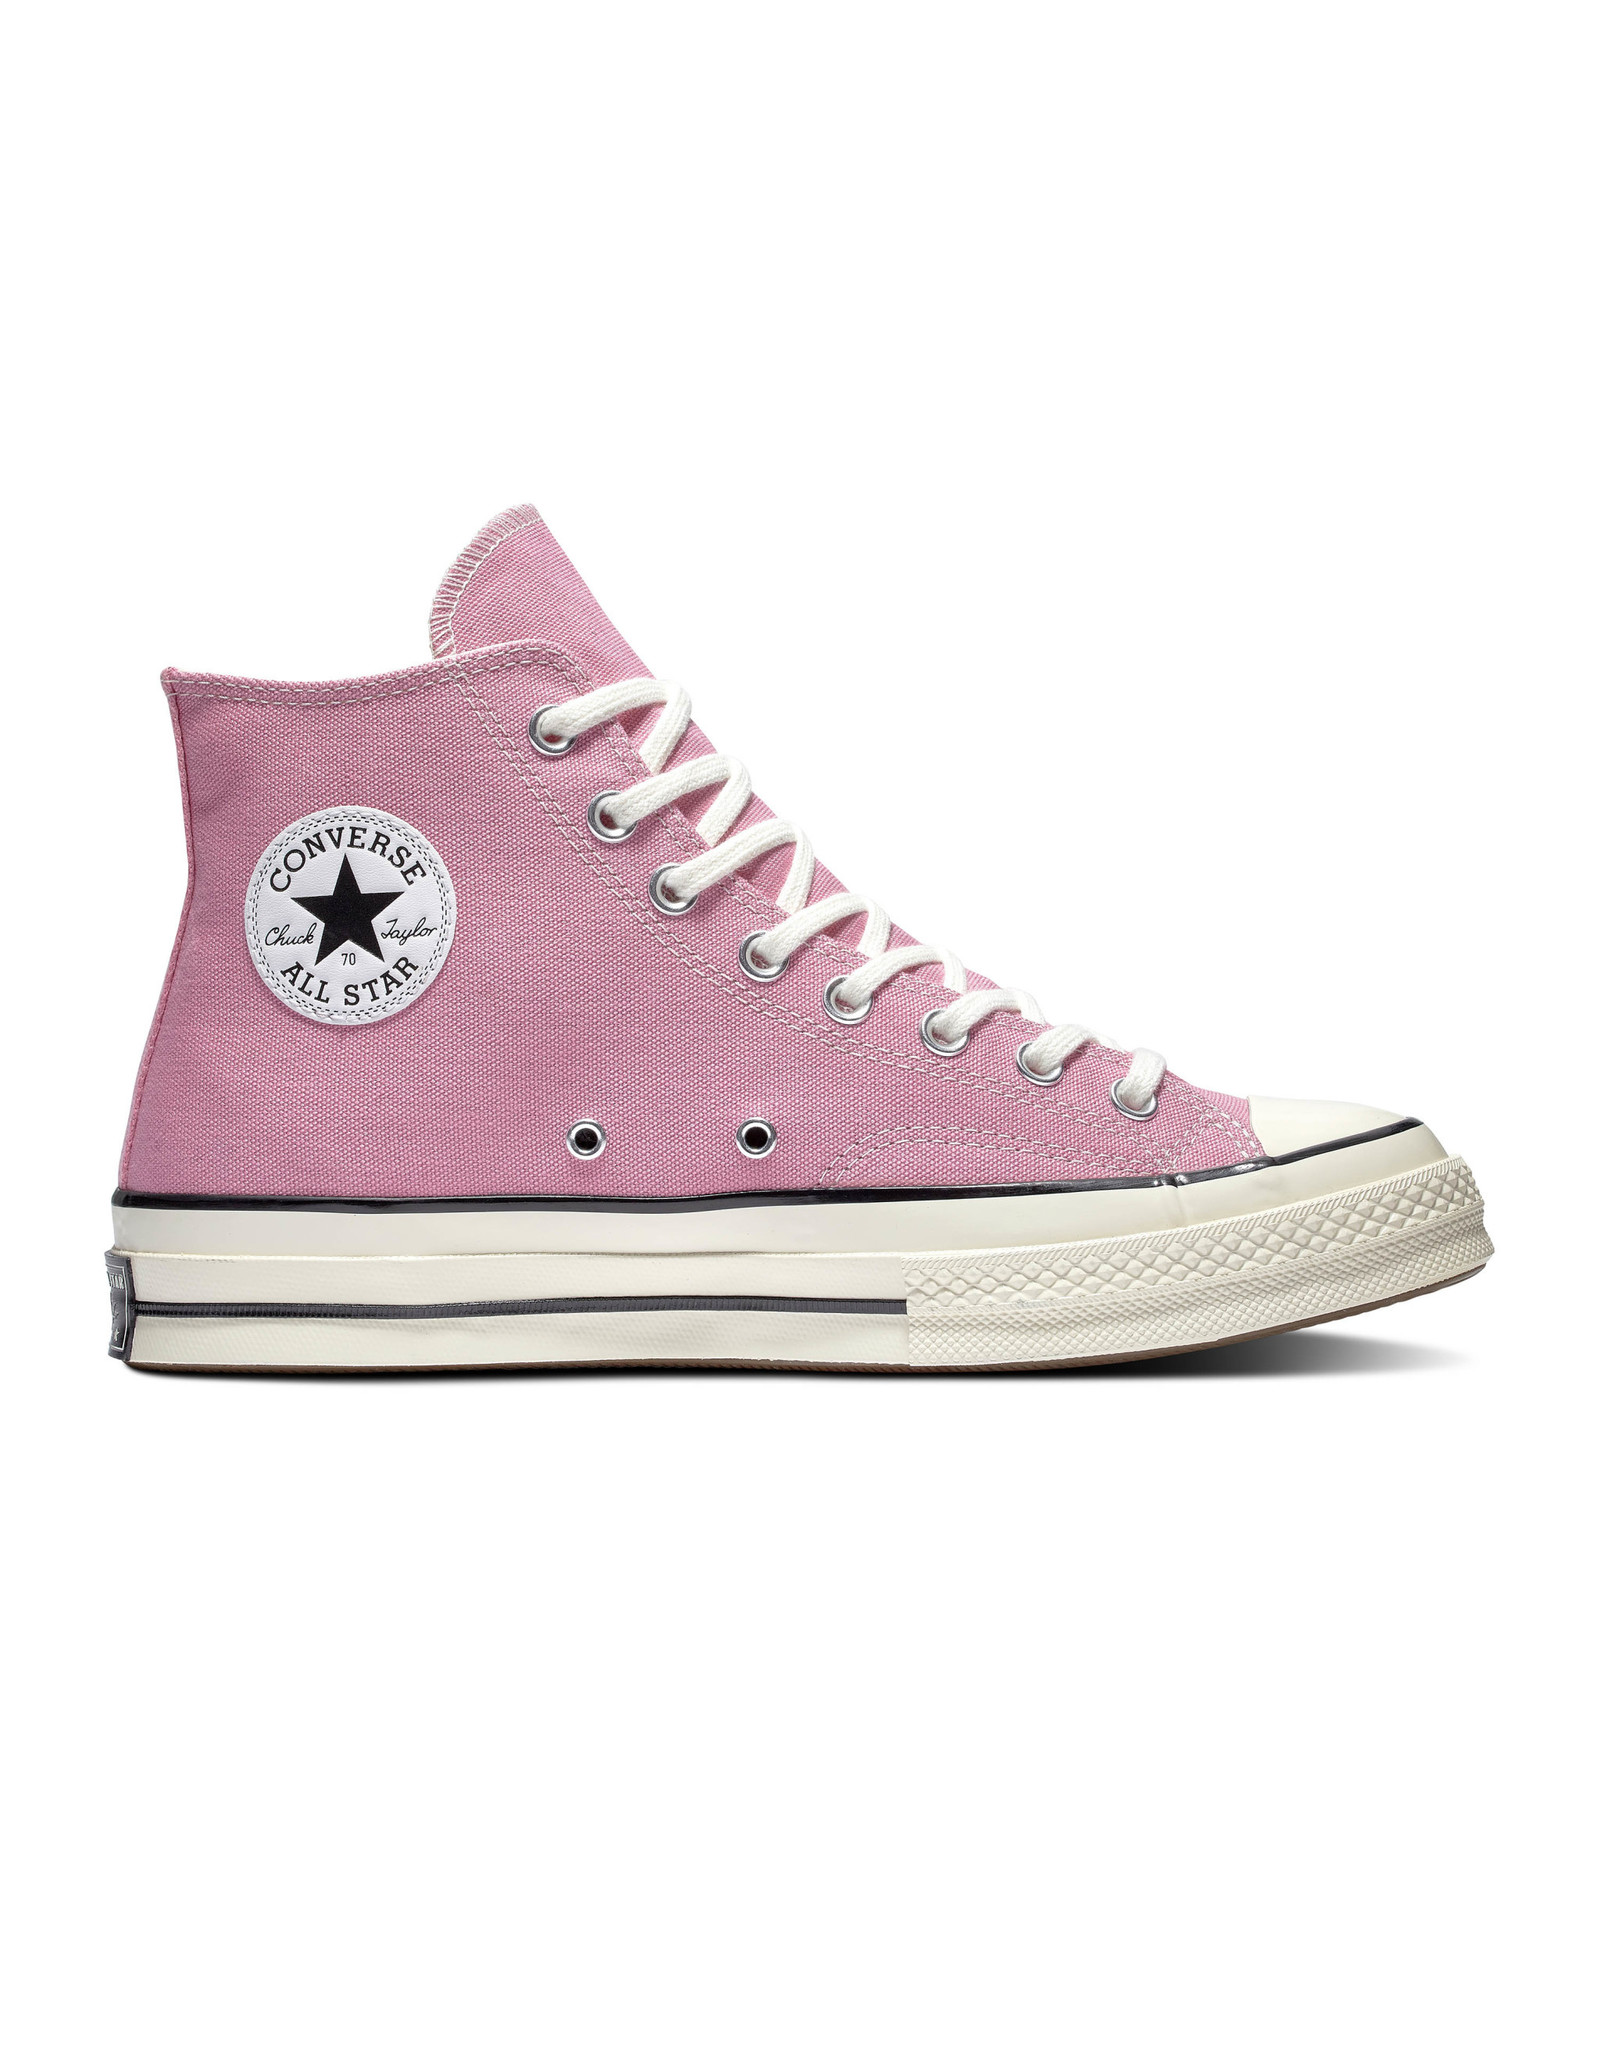 CONVERSE CHUCK 70 HI MAGIC FLAMINGO/EGRET/BLACK C970FA-164947C